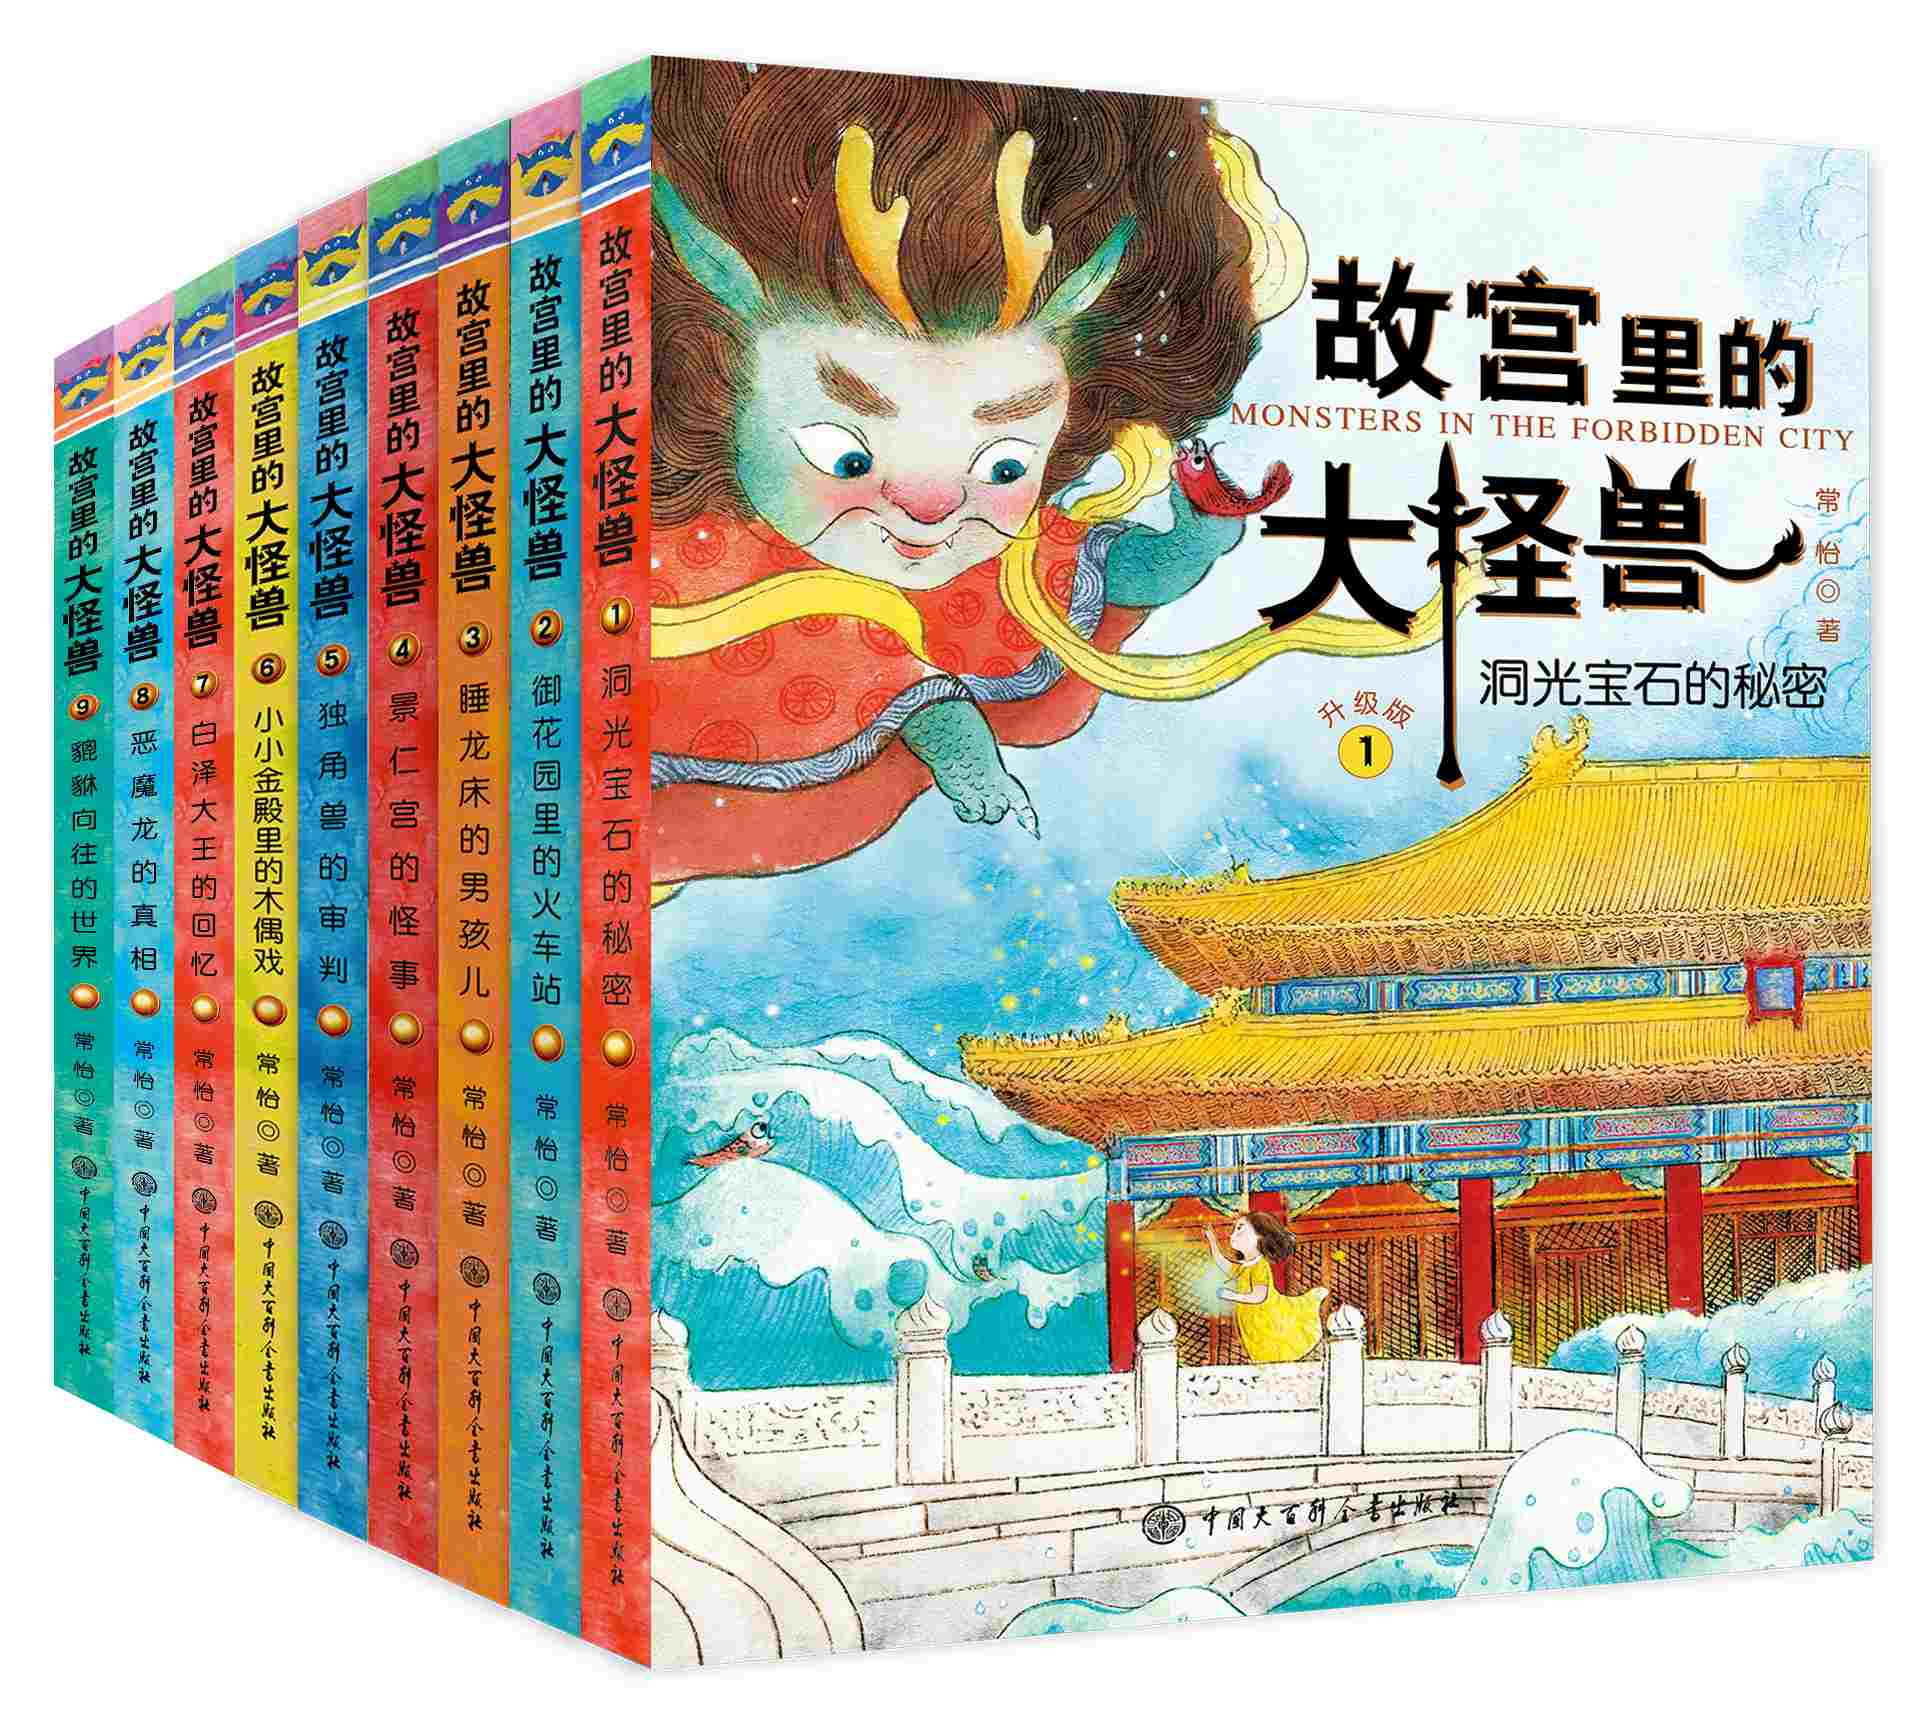 Forbidden City Themed Children S Books Bring Chinese Taste To Germany Cgtn